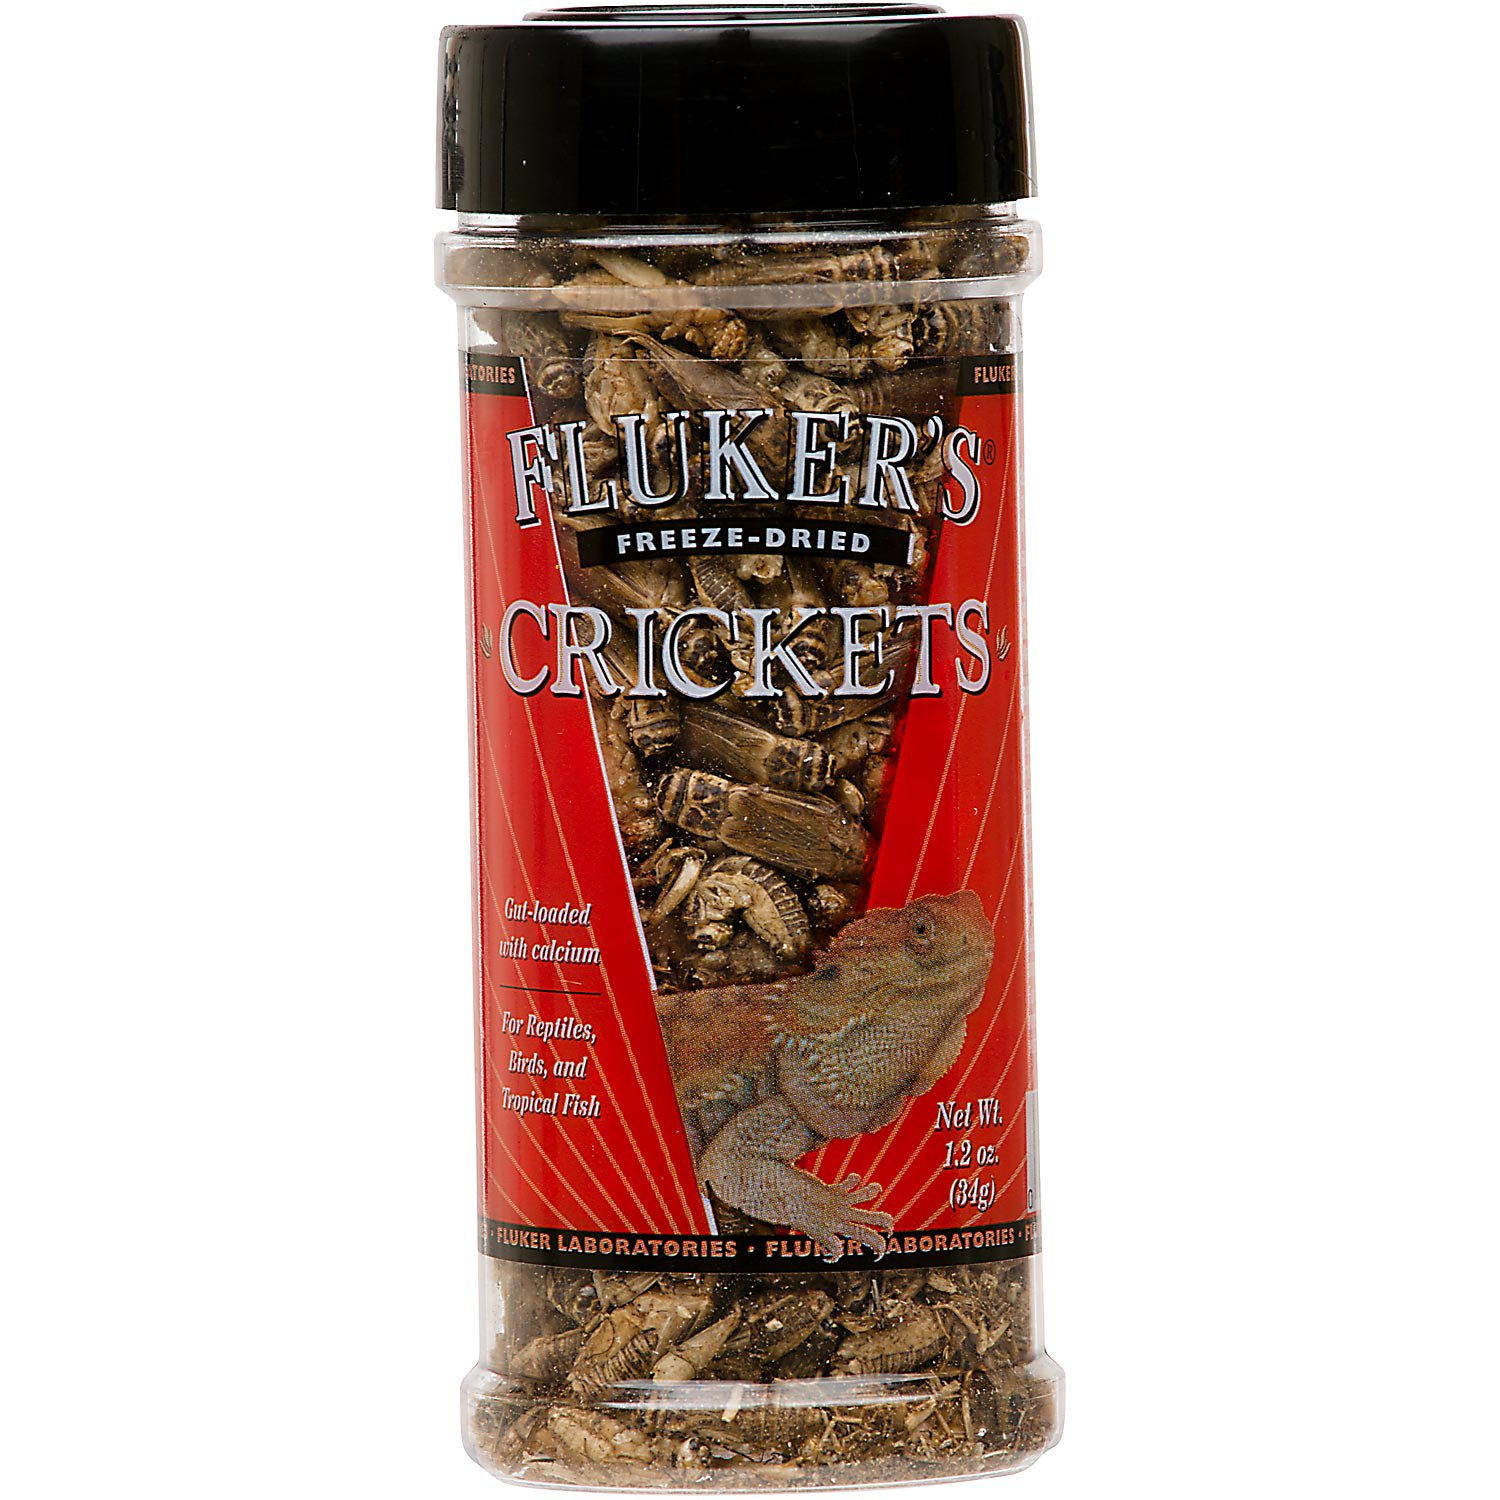 Fluker's Freeze-Dried Crickets | Petco | Tuggl